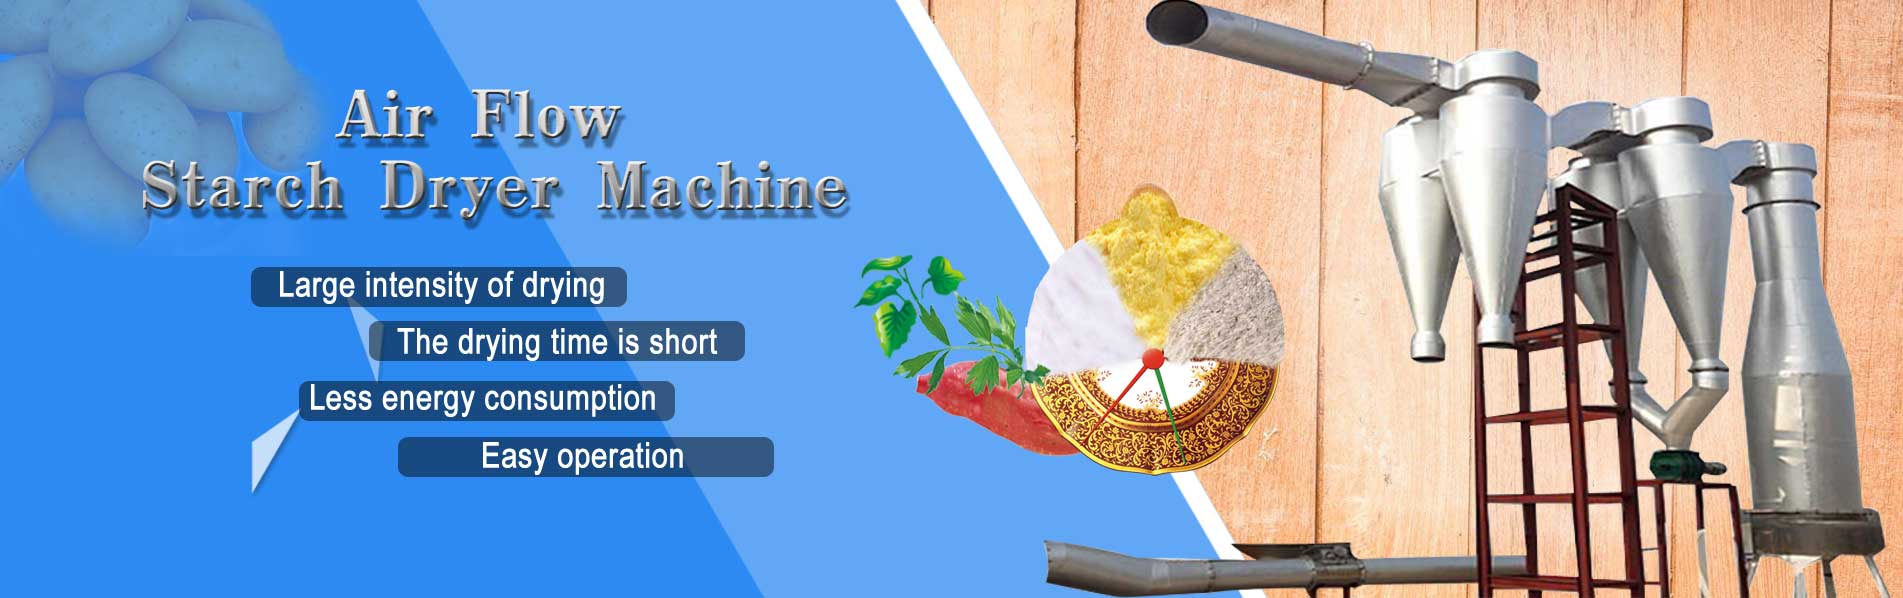 Air Flow Starch Dryer Machine